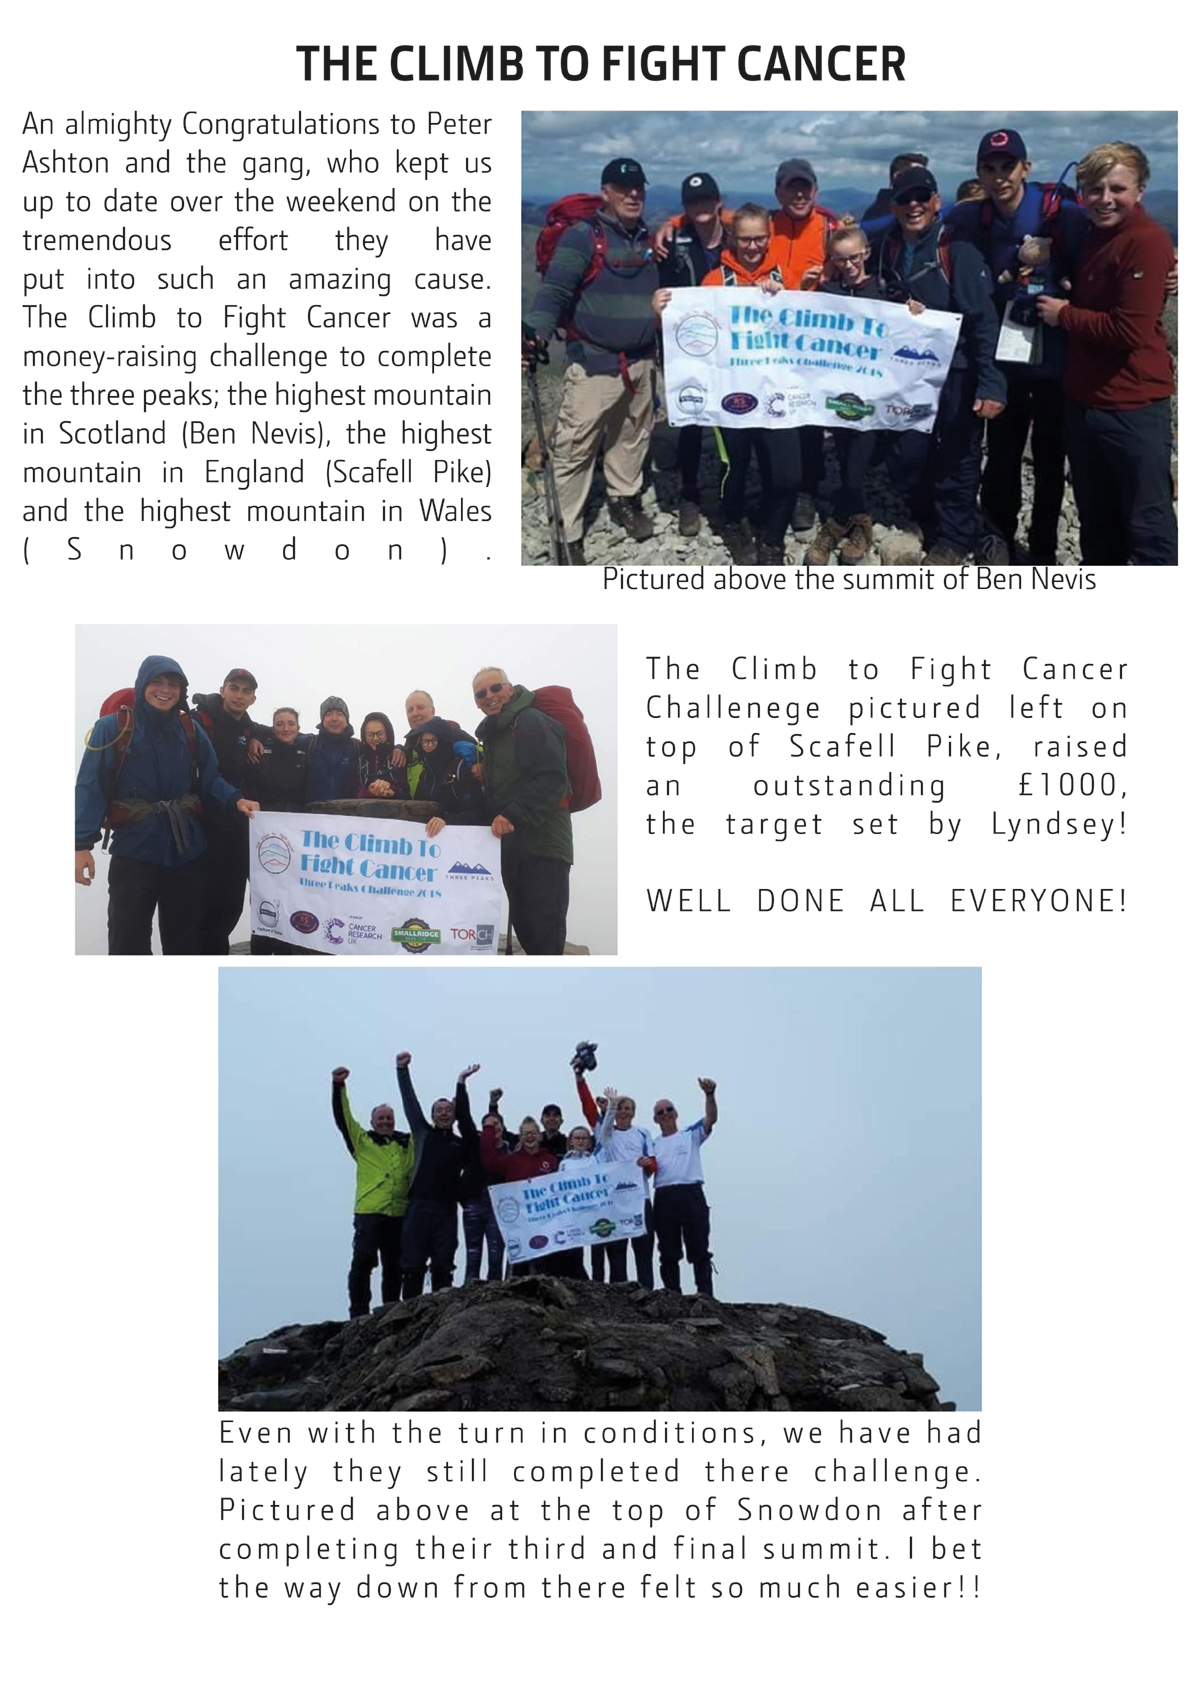 The climb to fight cancer